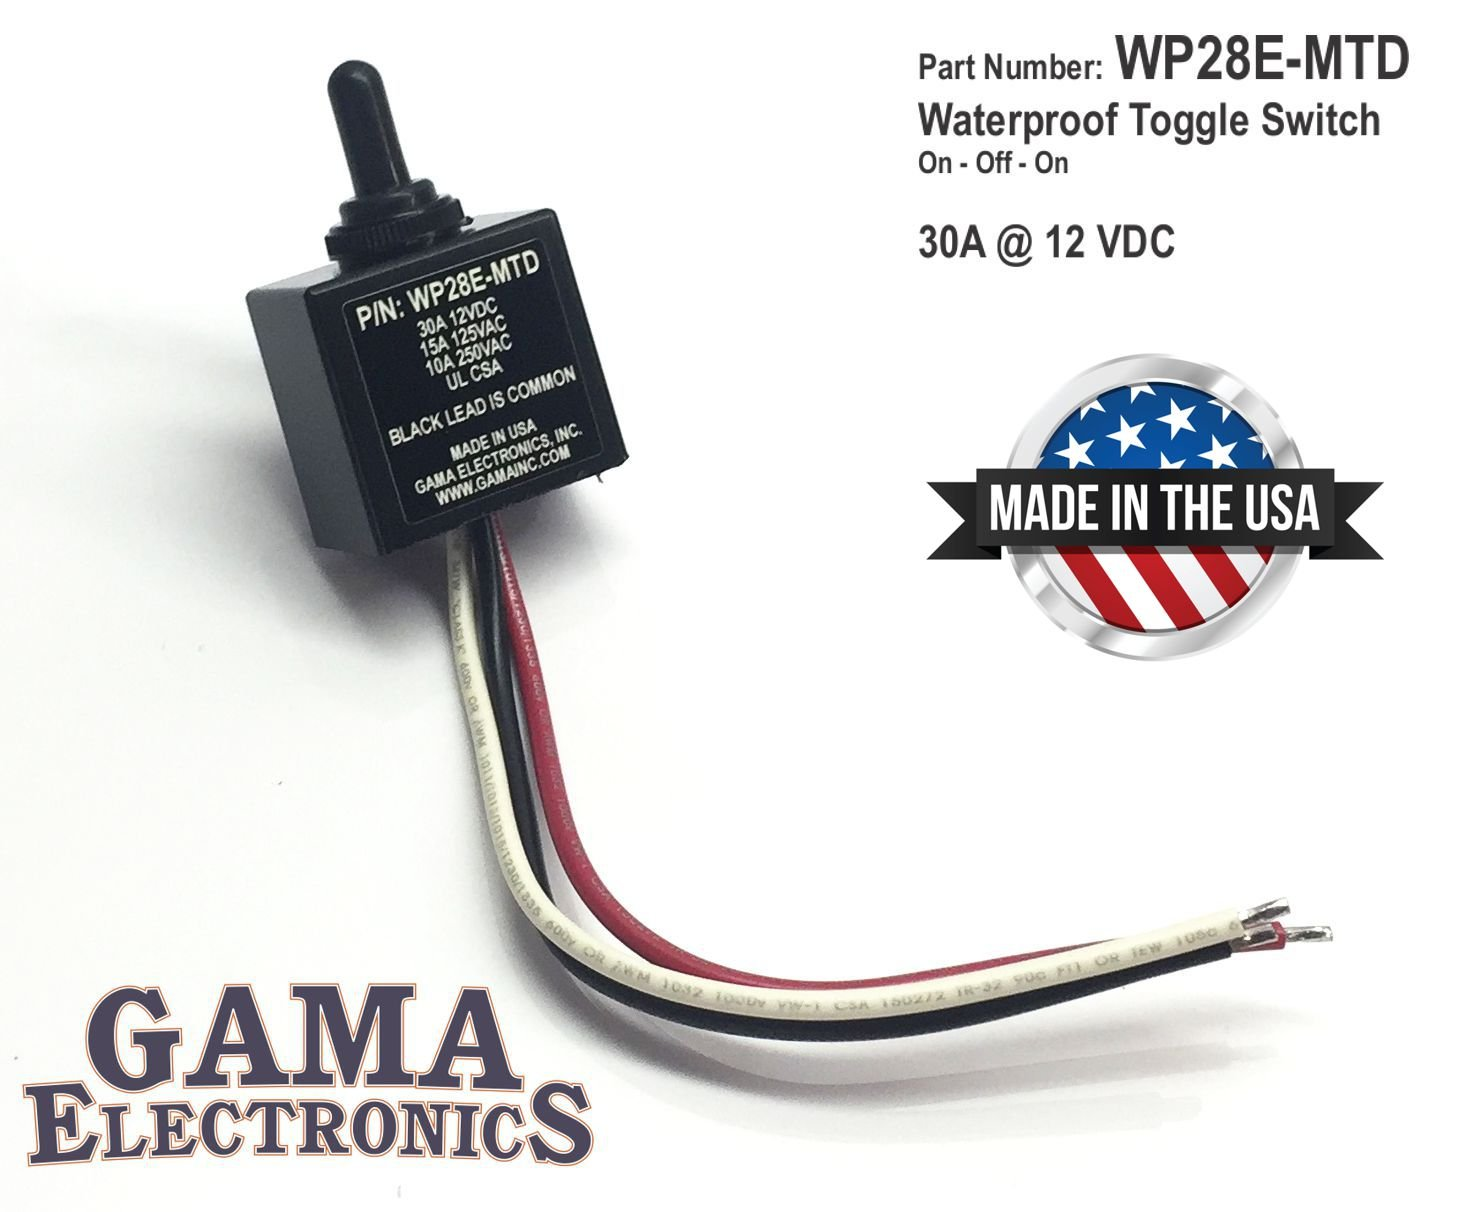 GAMA Electronics Waterproof 3 Position On-Off-On Toggle Switch